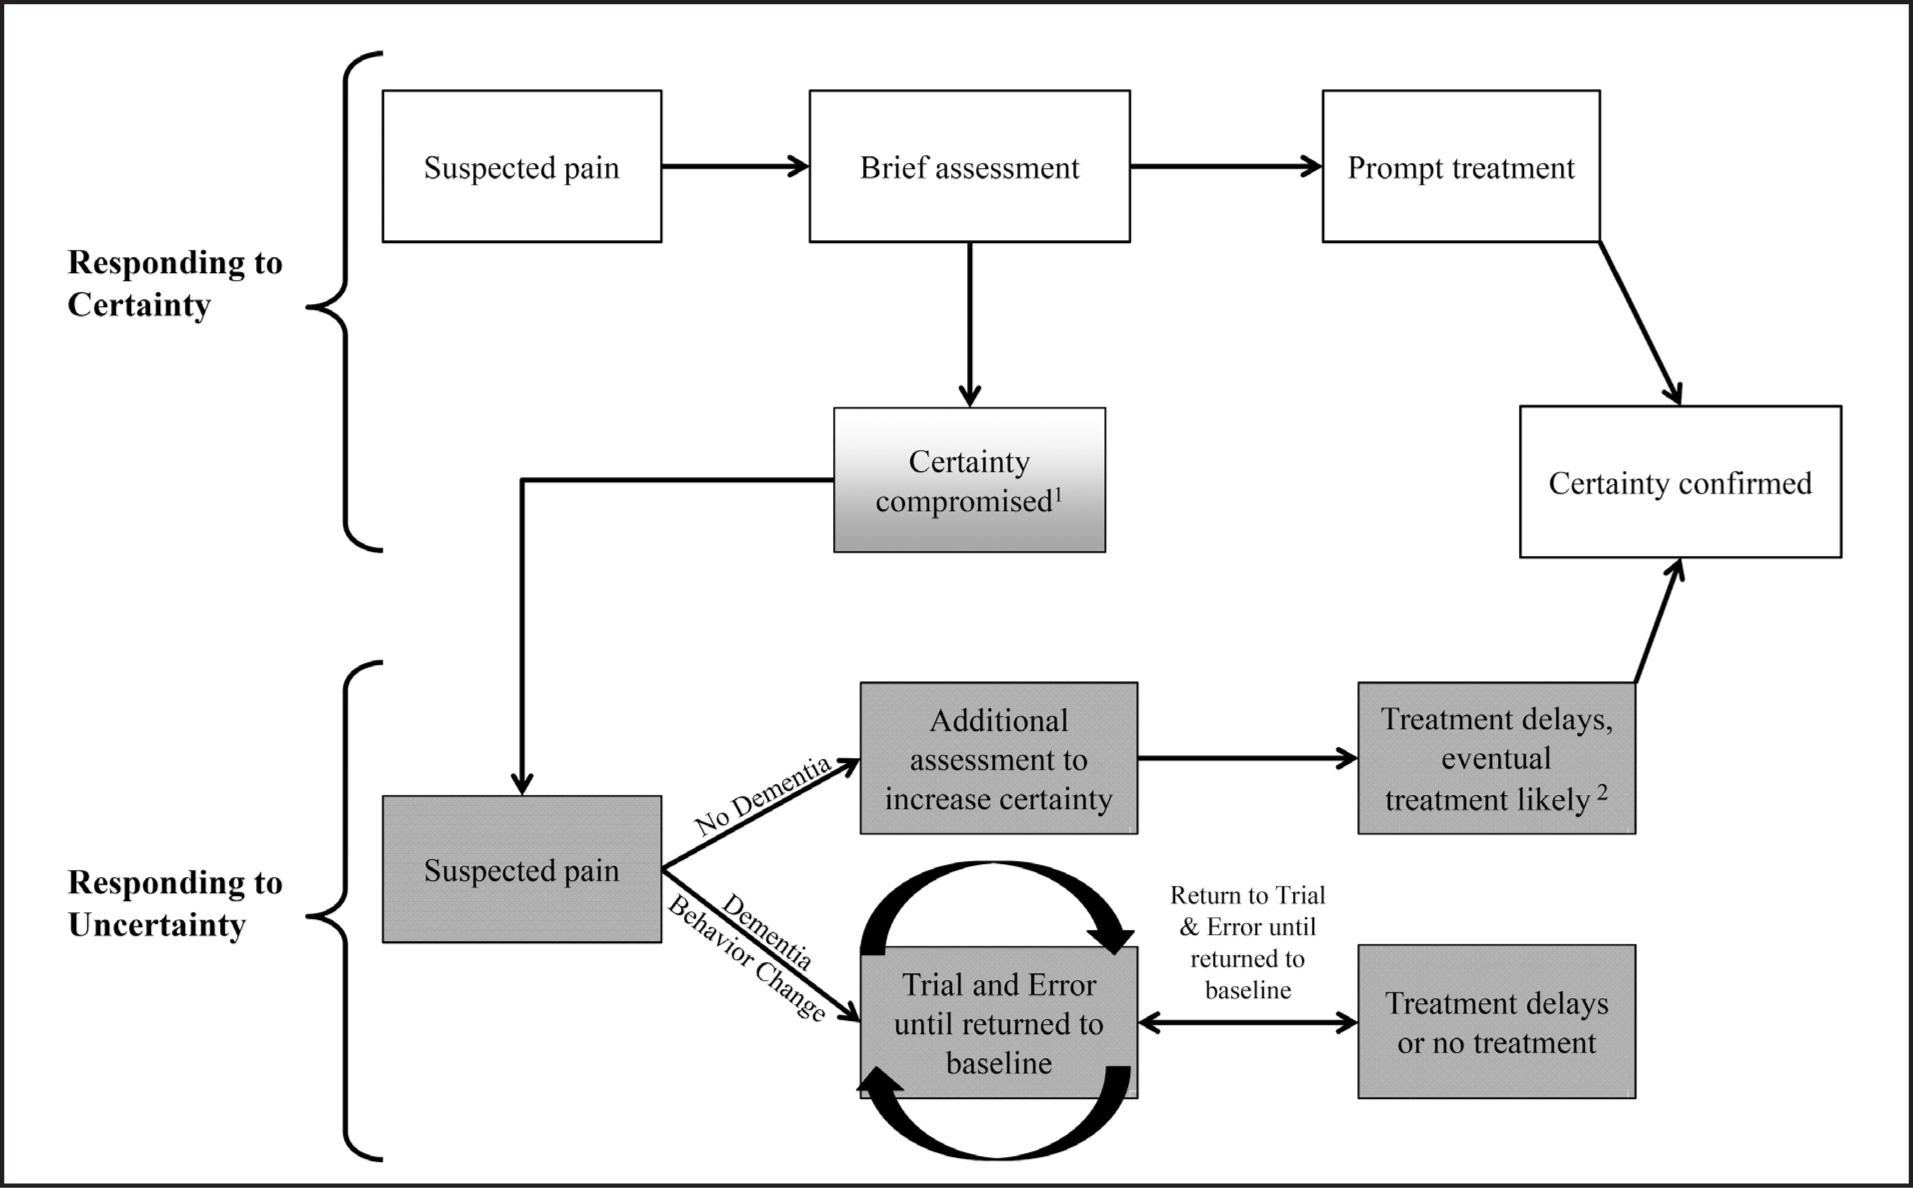 Conceptual model illustrating the process nurses engage in while identifying and deciding whether or not to treat pain in nursing home residents with dementia.1 In situations with high initial certainty, information discovered during assessment (e.g., history of drug seeking) may compromise certainty, shifting a resident to the Responding to Uncertainty trajectory.2 Residents without dementia are much more likely to receive eventual treatment due to their ability to advocate for themselves, whereas residents with dementia who have complaints of pain but no behavior change may receive no treatment at all.